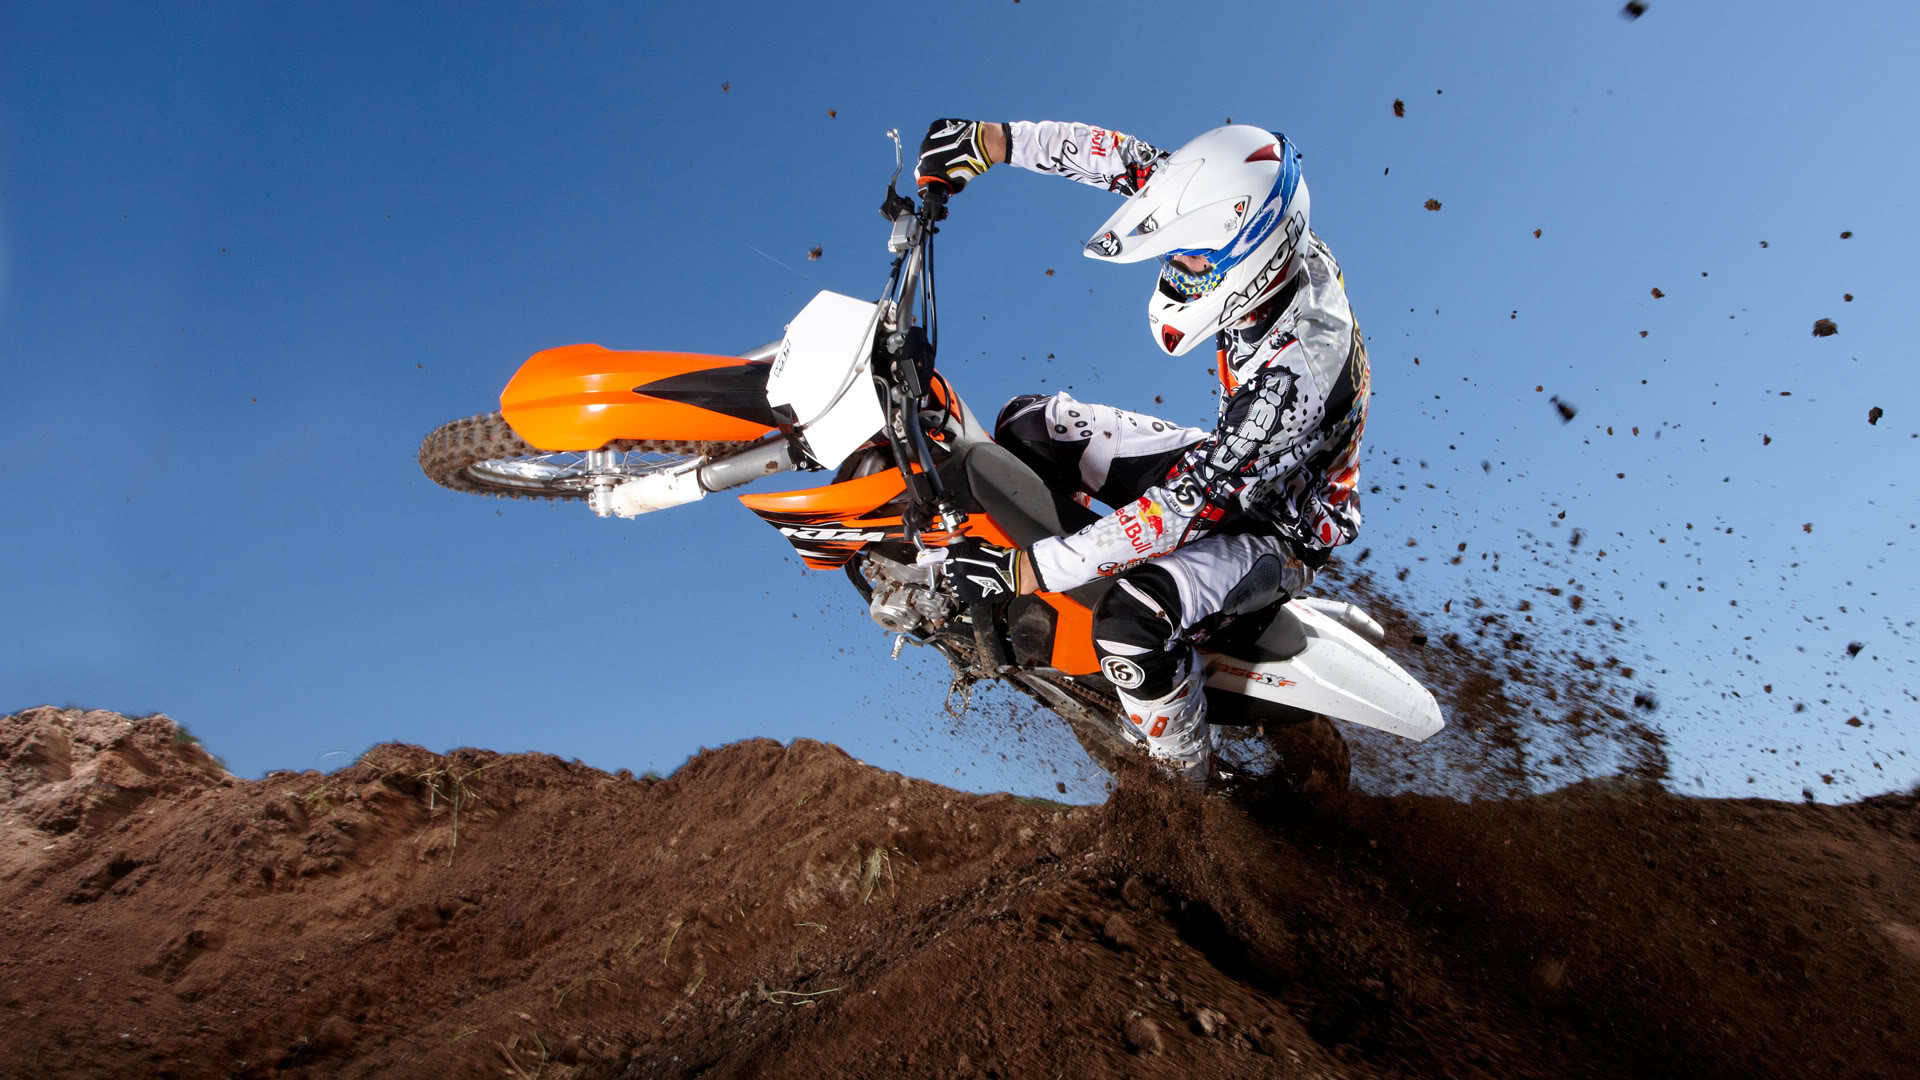 Ktm Wallpaper Dirt Bike 65 Images